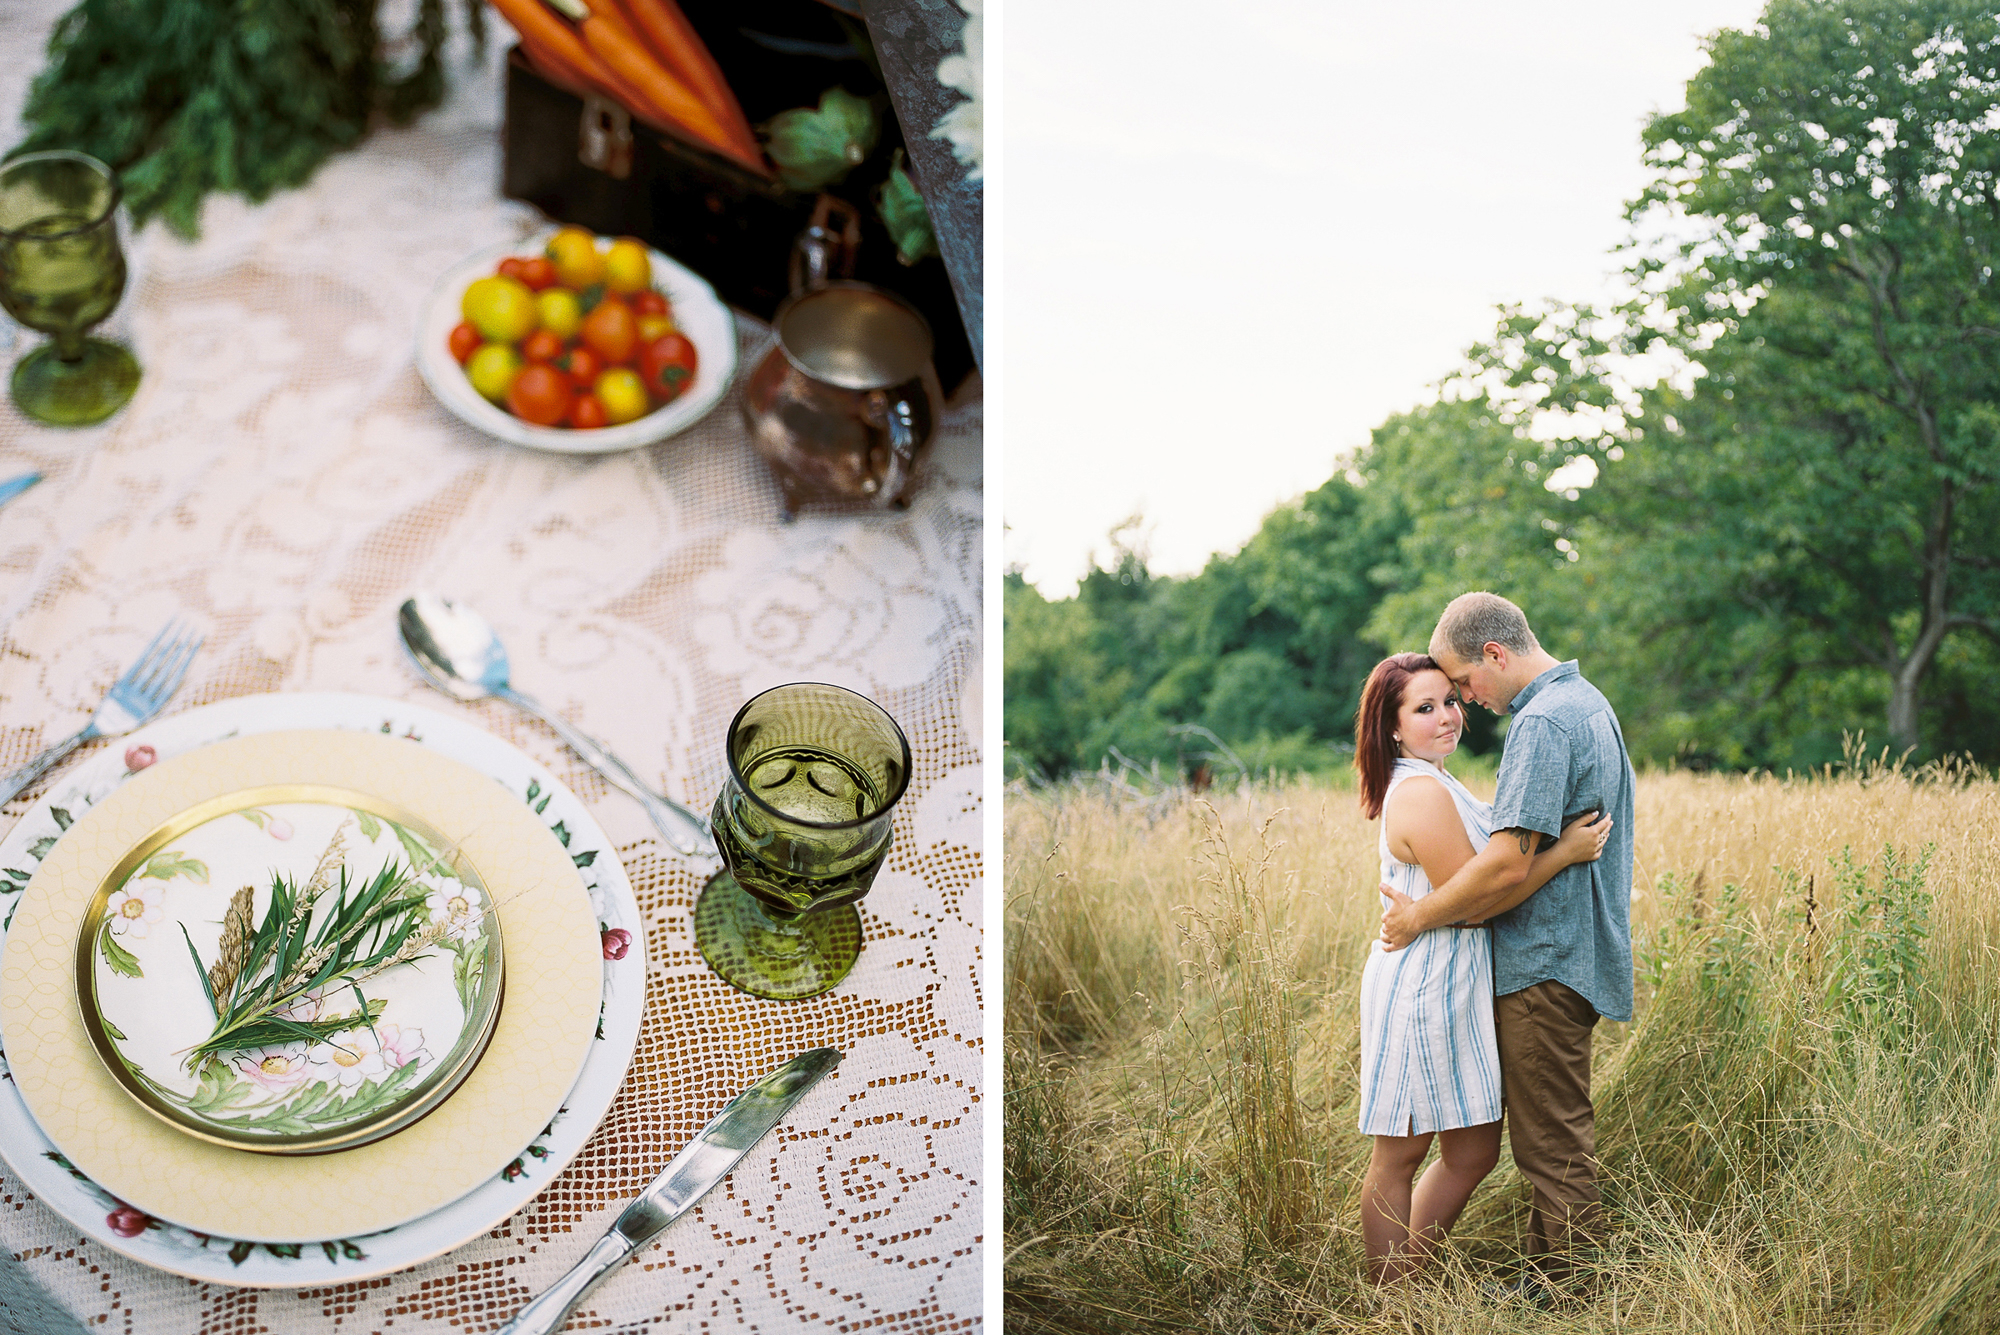 Alexandra-Elise-Photography-Ali-Reed-Film-Farm-Engagement-Session-023